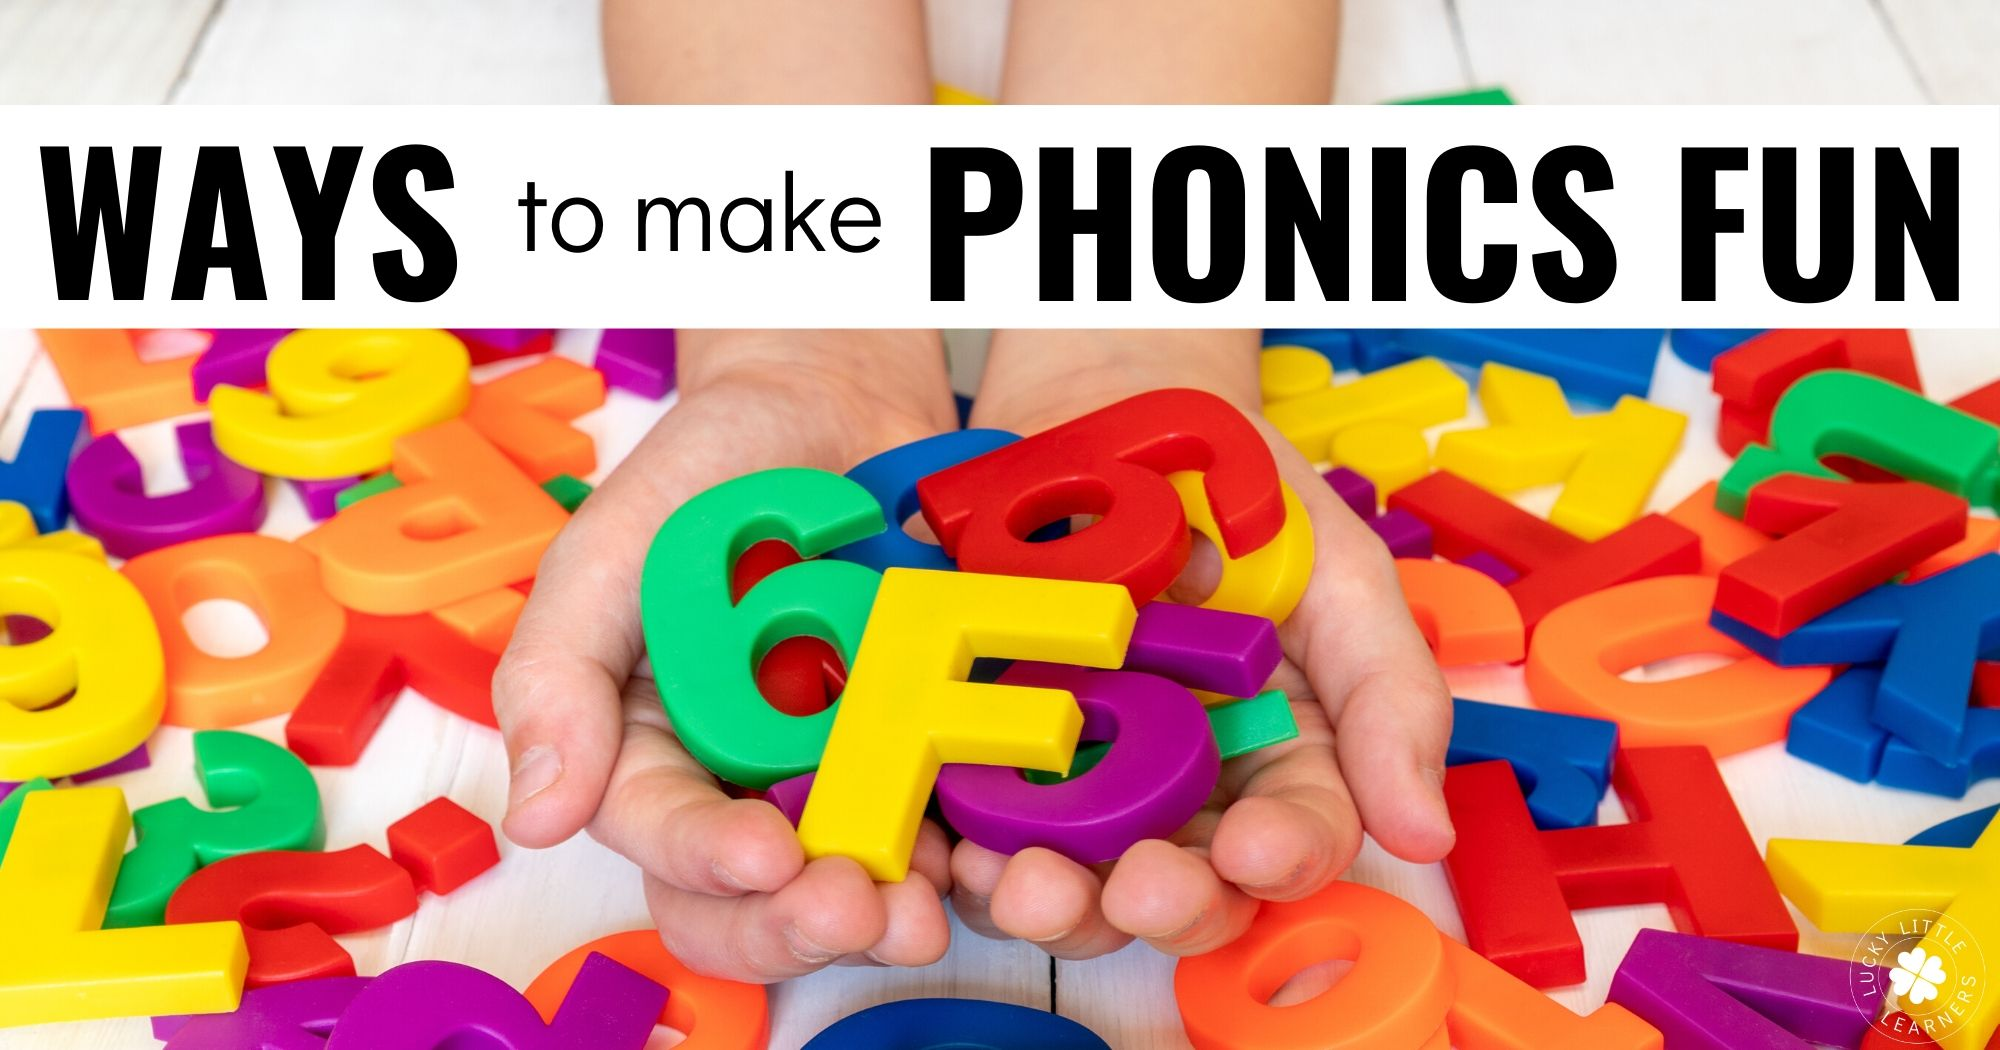 7 Ways to Make Phonics Fun